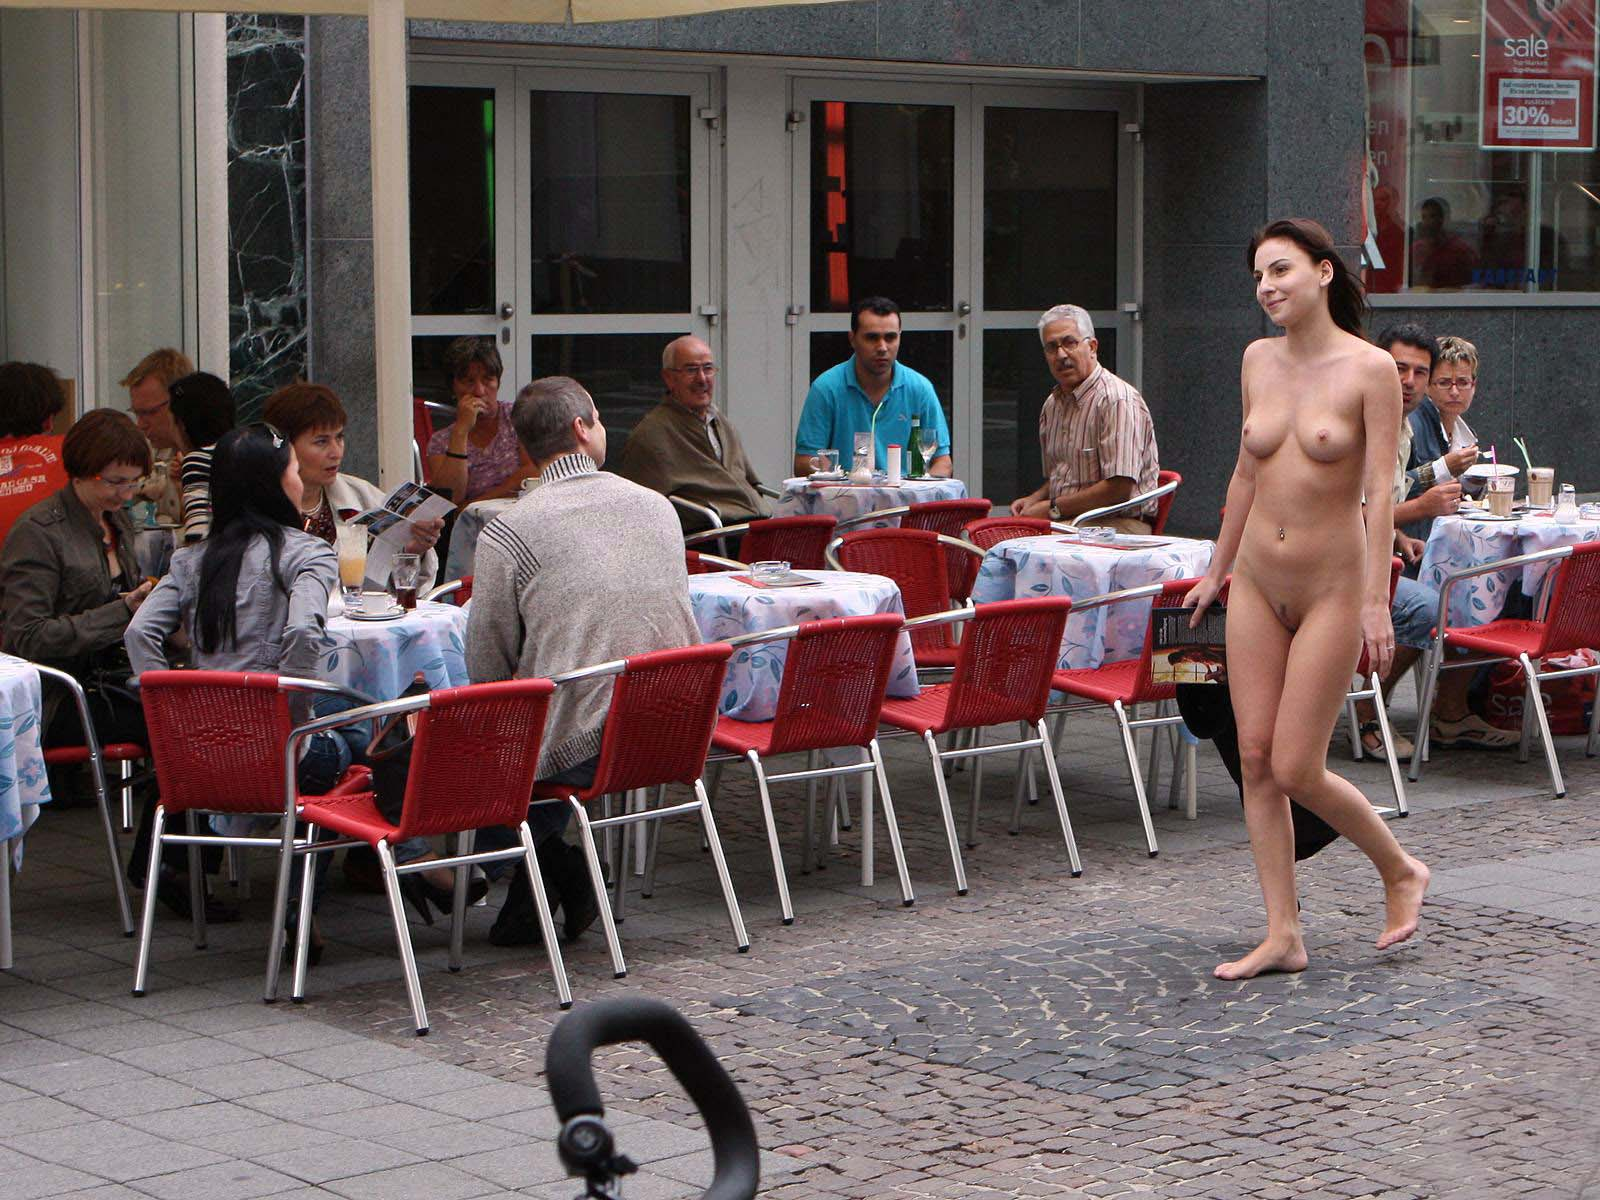 Nude woman walking in street